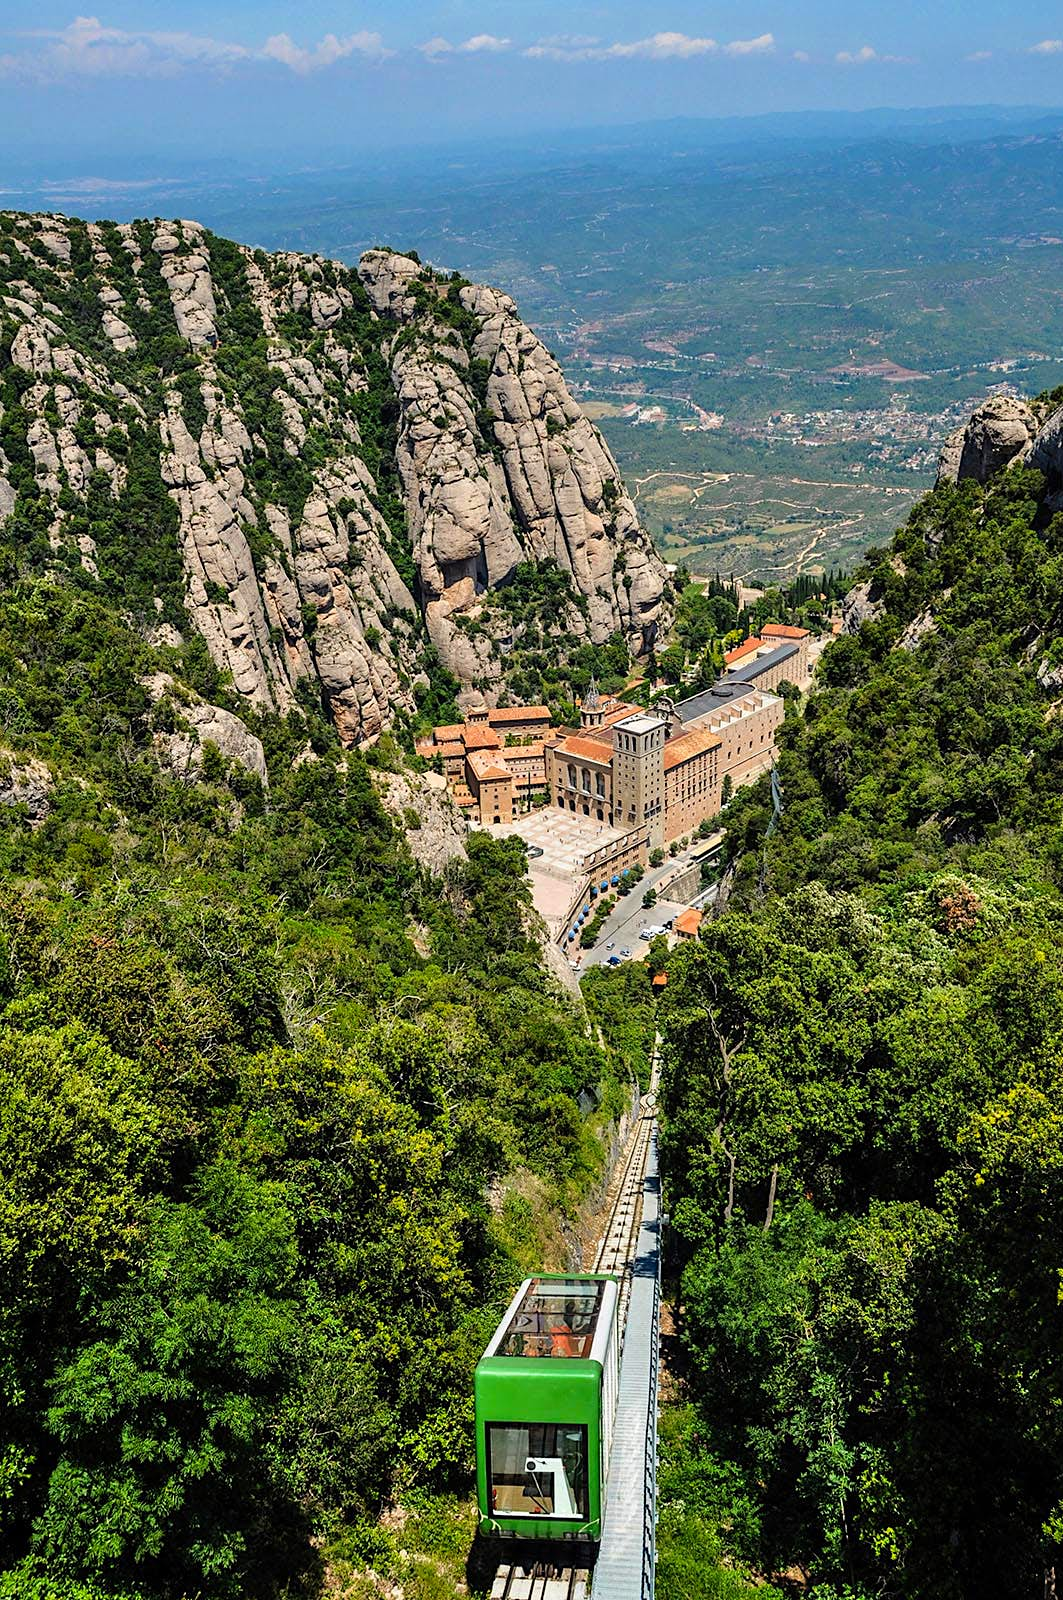 Santa Maria de Montserrat is an abbey of the Order of Saint Benedict located on the mountain of Montserrat in Catalonia, Spain.